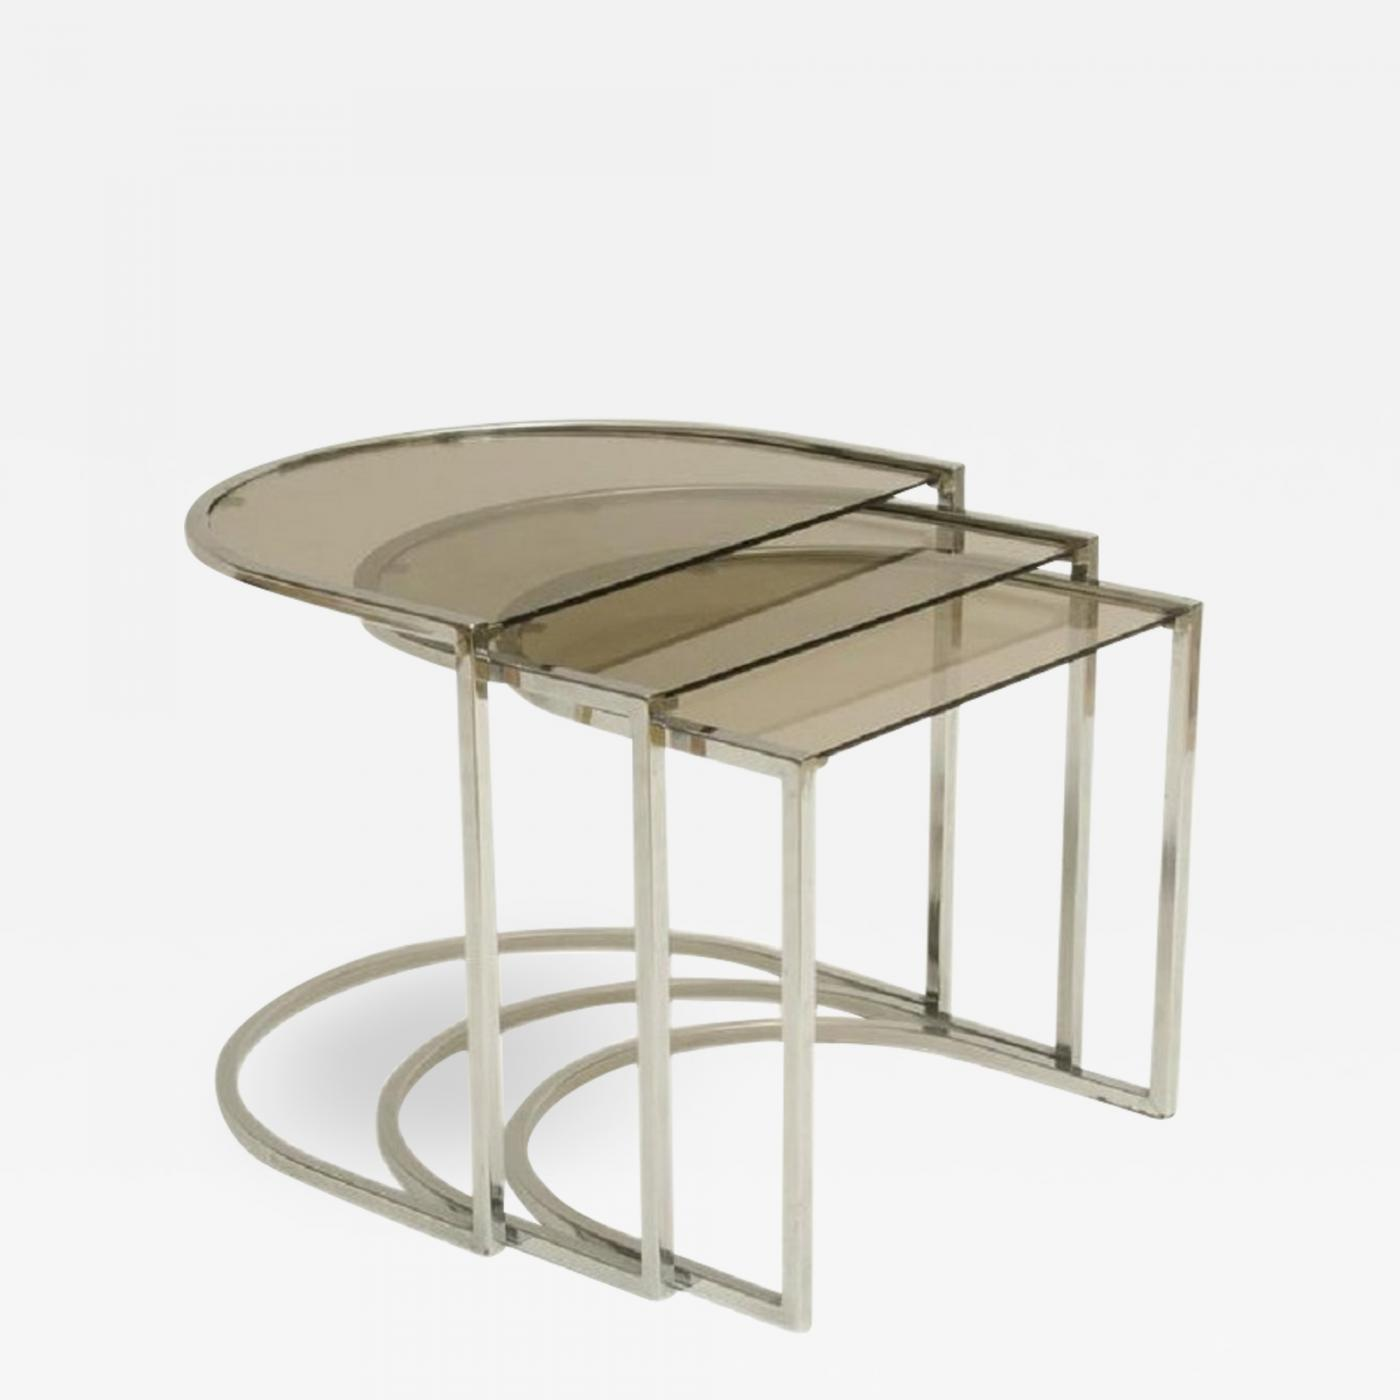 Glass Nesting Tables Milo Baughman Set Of Three Mid Century Glass And Chrome Nesting Tables By Milo Baughman